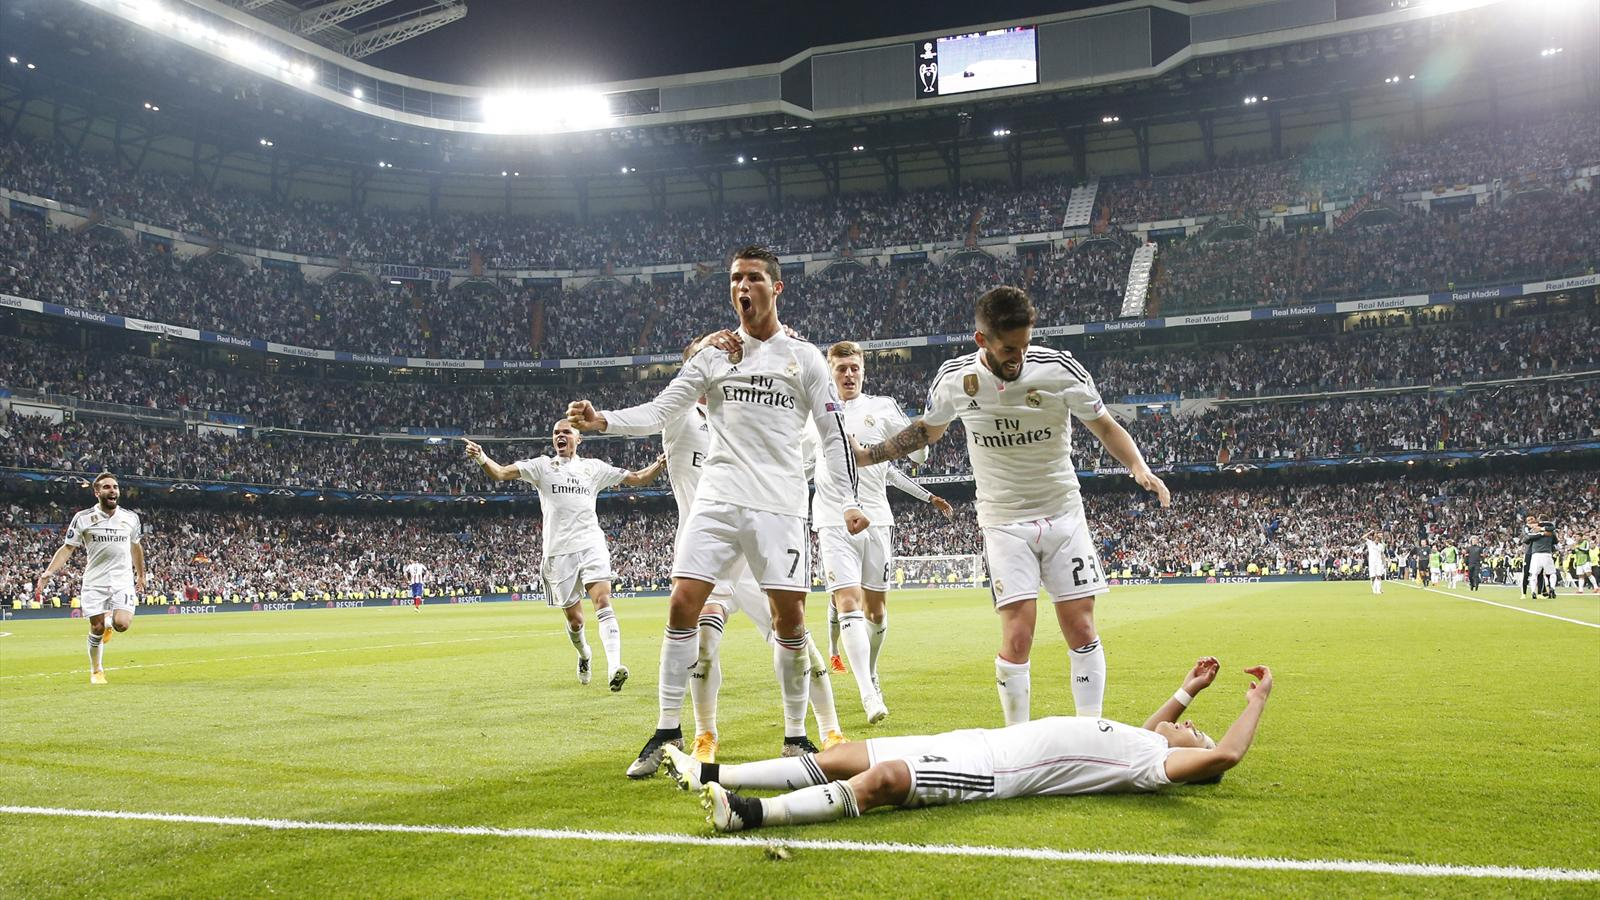 Cristiano Ronaldo celebrates Real Madrid's goal against Atletico while the scorer Javier Hernandez lies on the ground